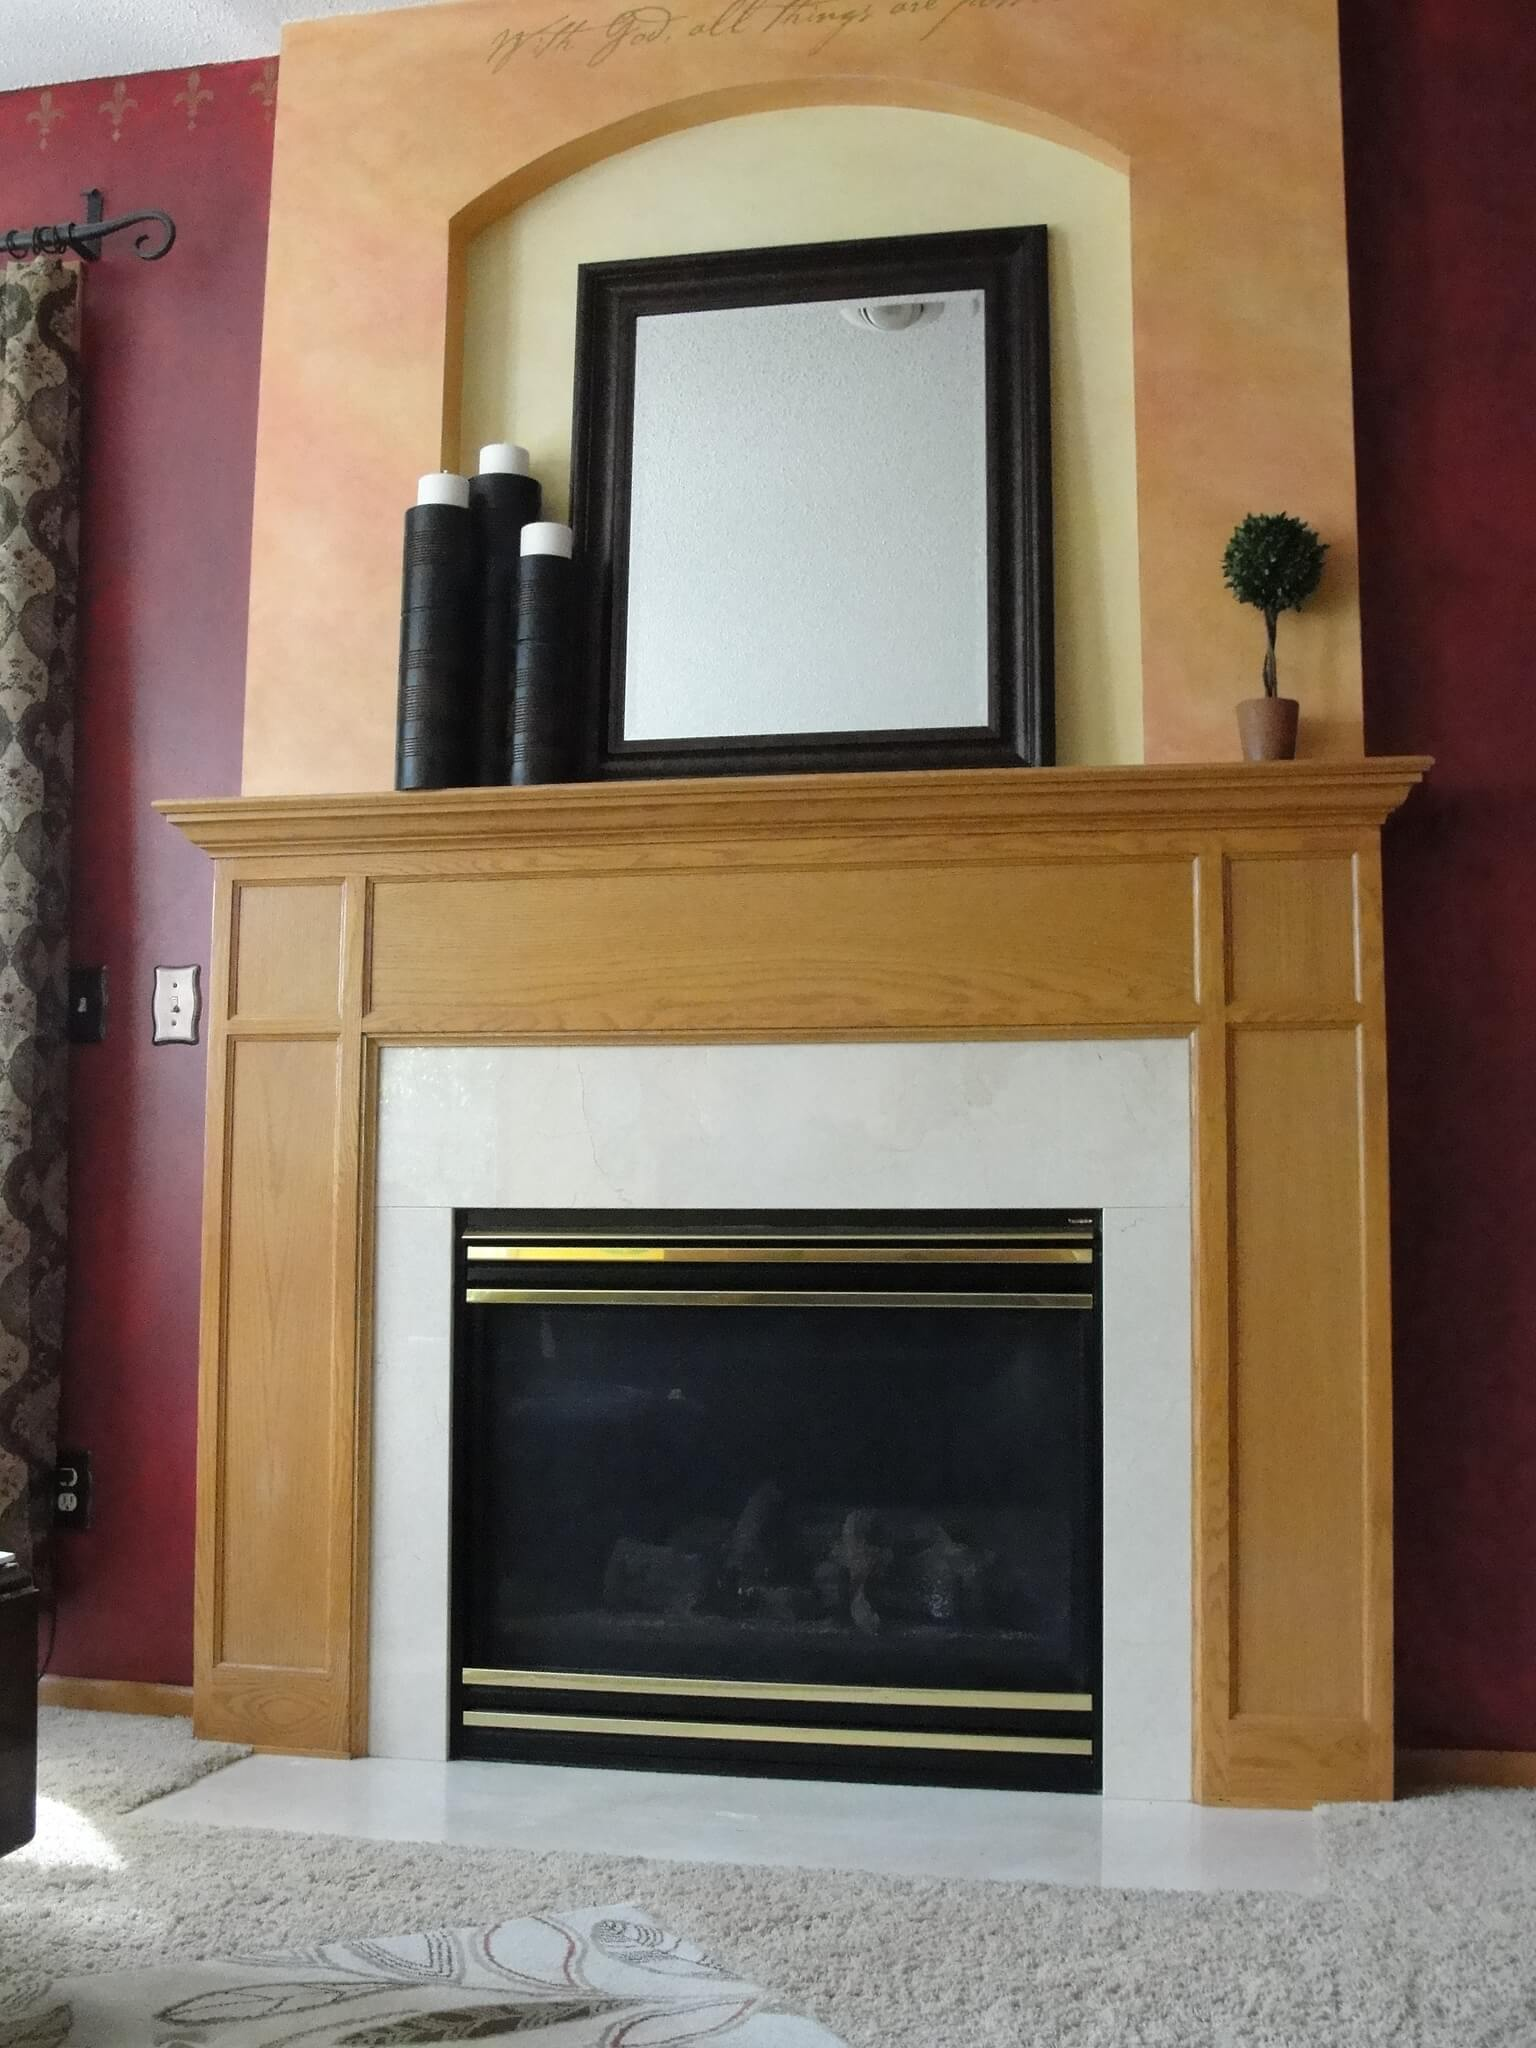 Gas Fireplace Tune Up Minneapolis My Beef With Old Gas Log Fireplaces